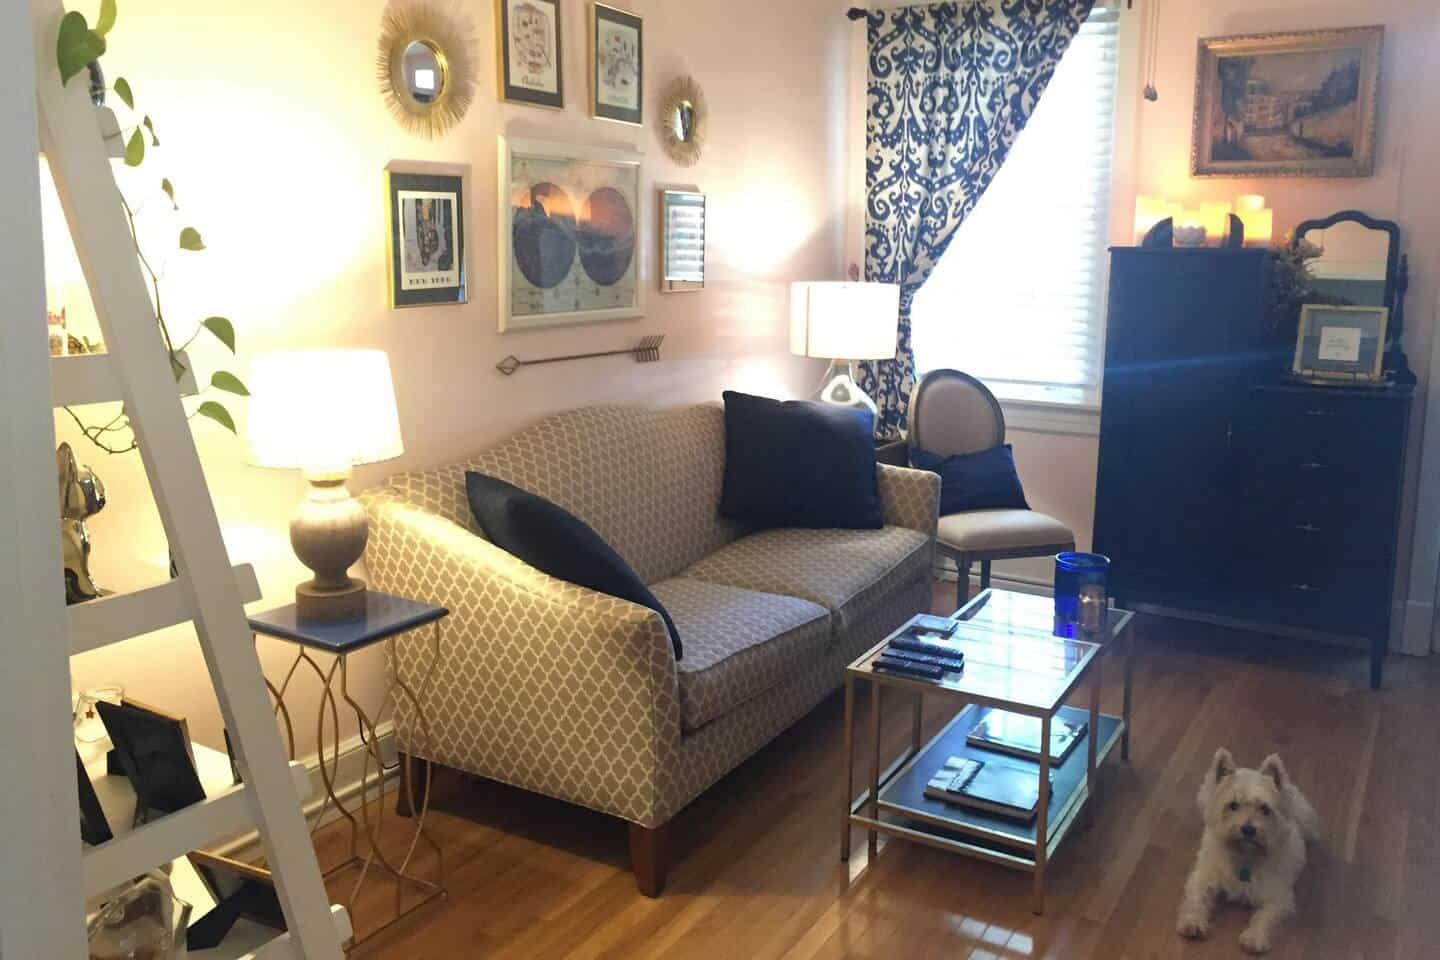 Image of Airbnb rental in Richmond